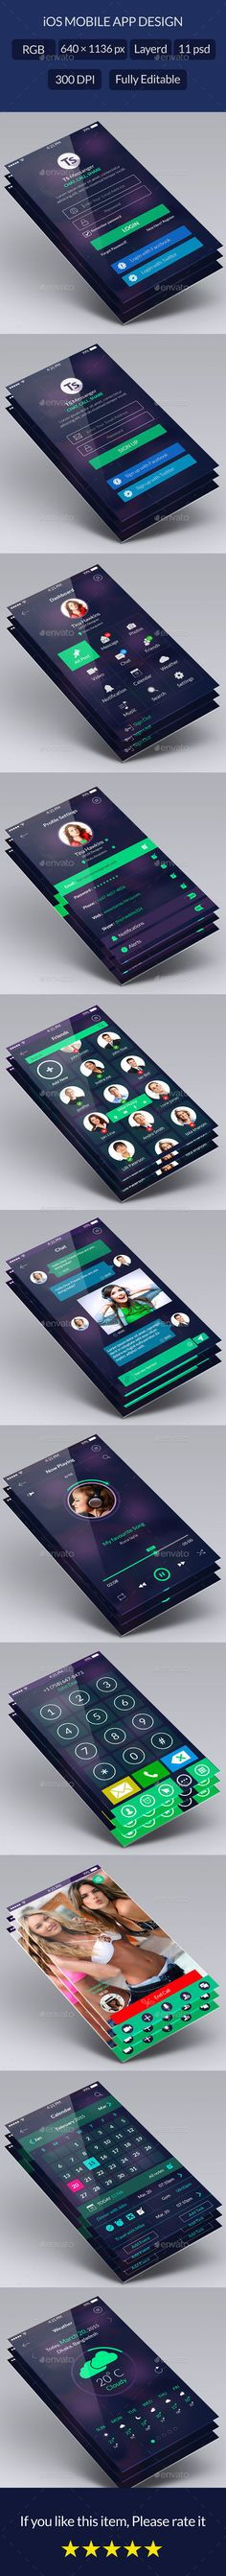 Clean Flat App UI Design Kit (User Interfaces)